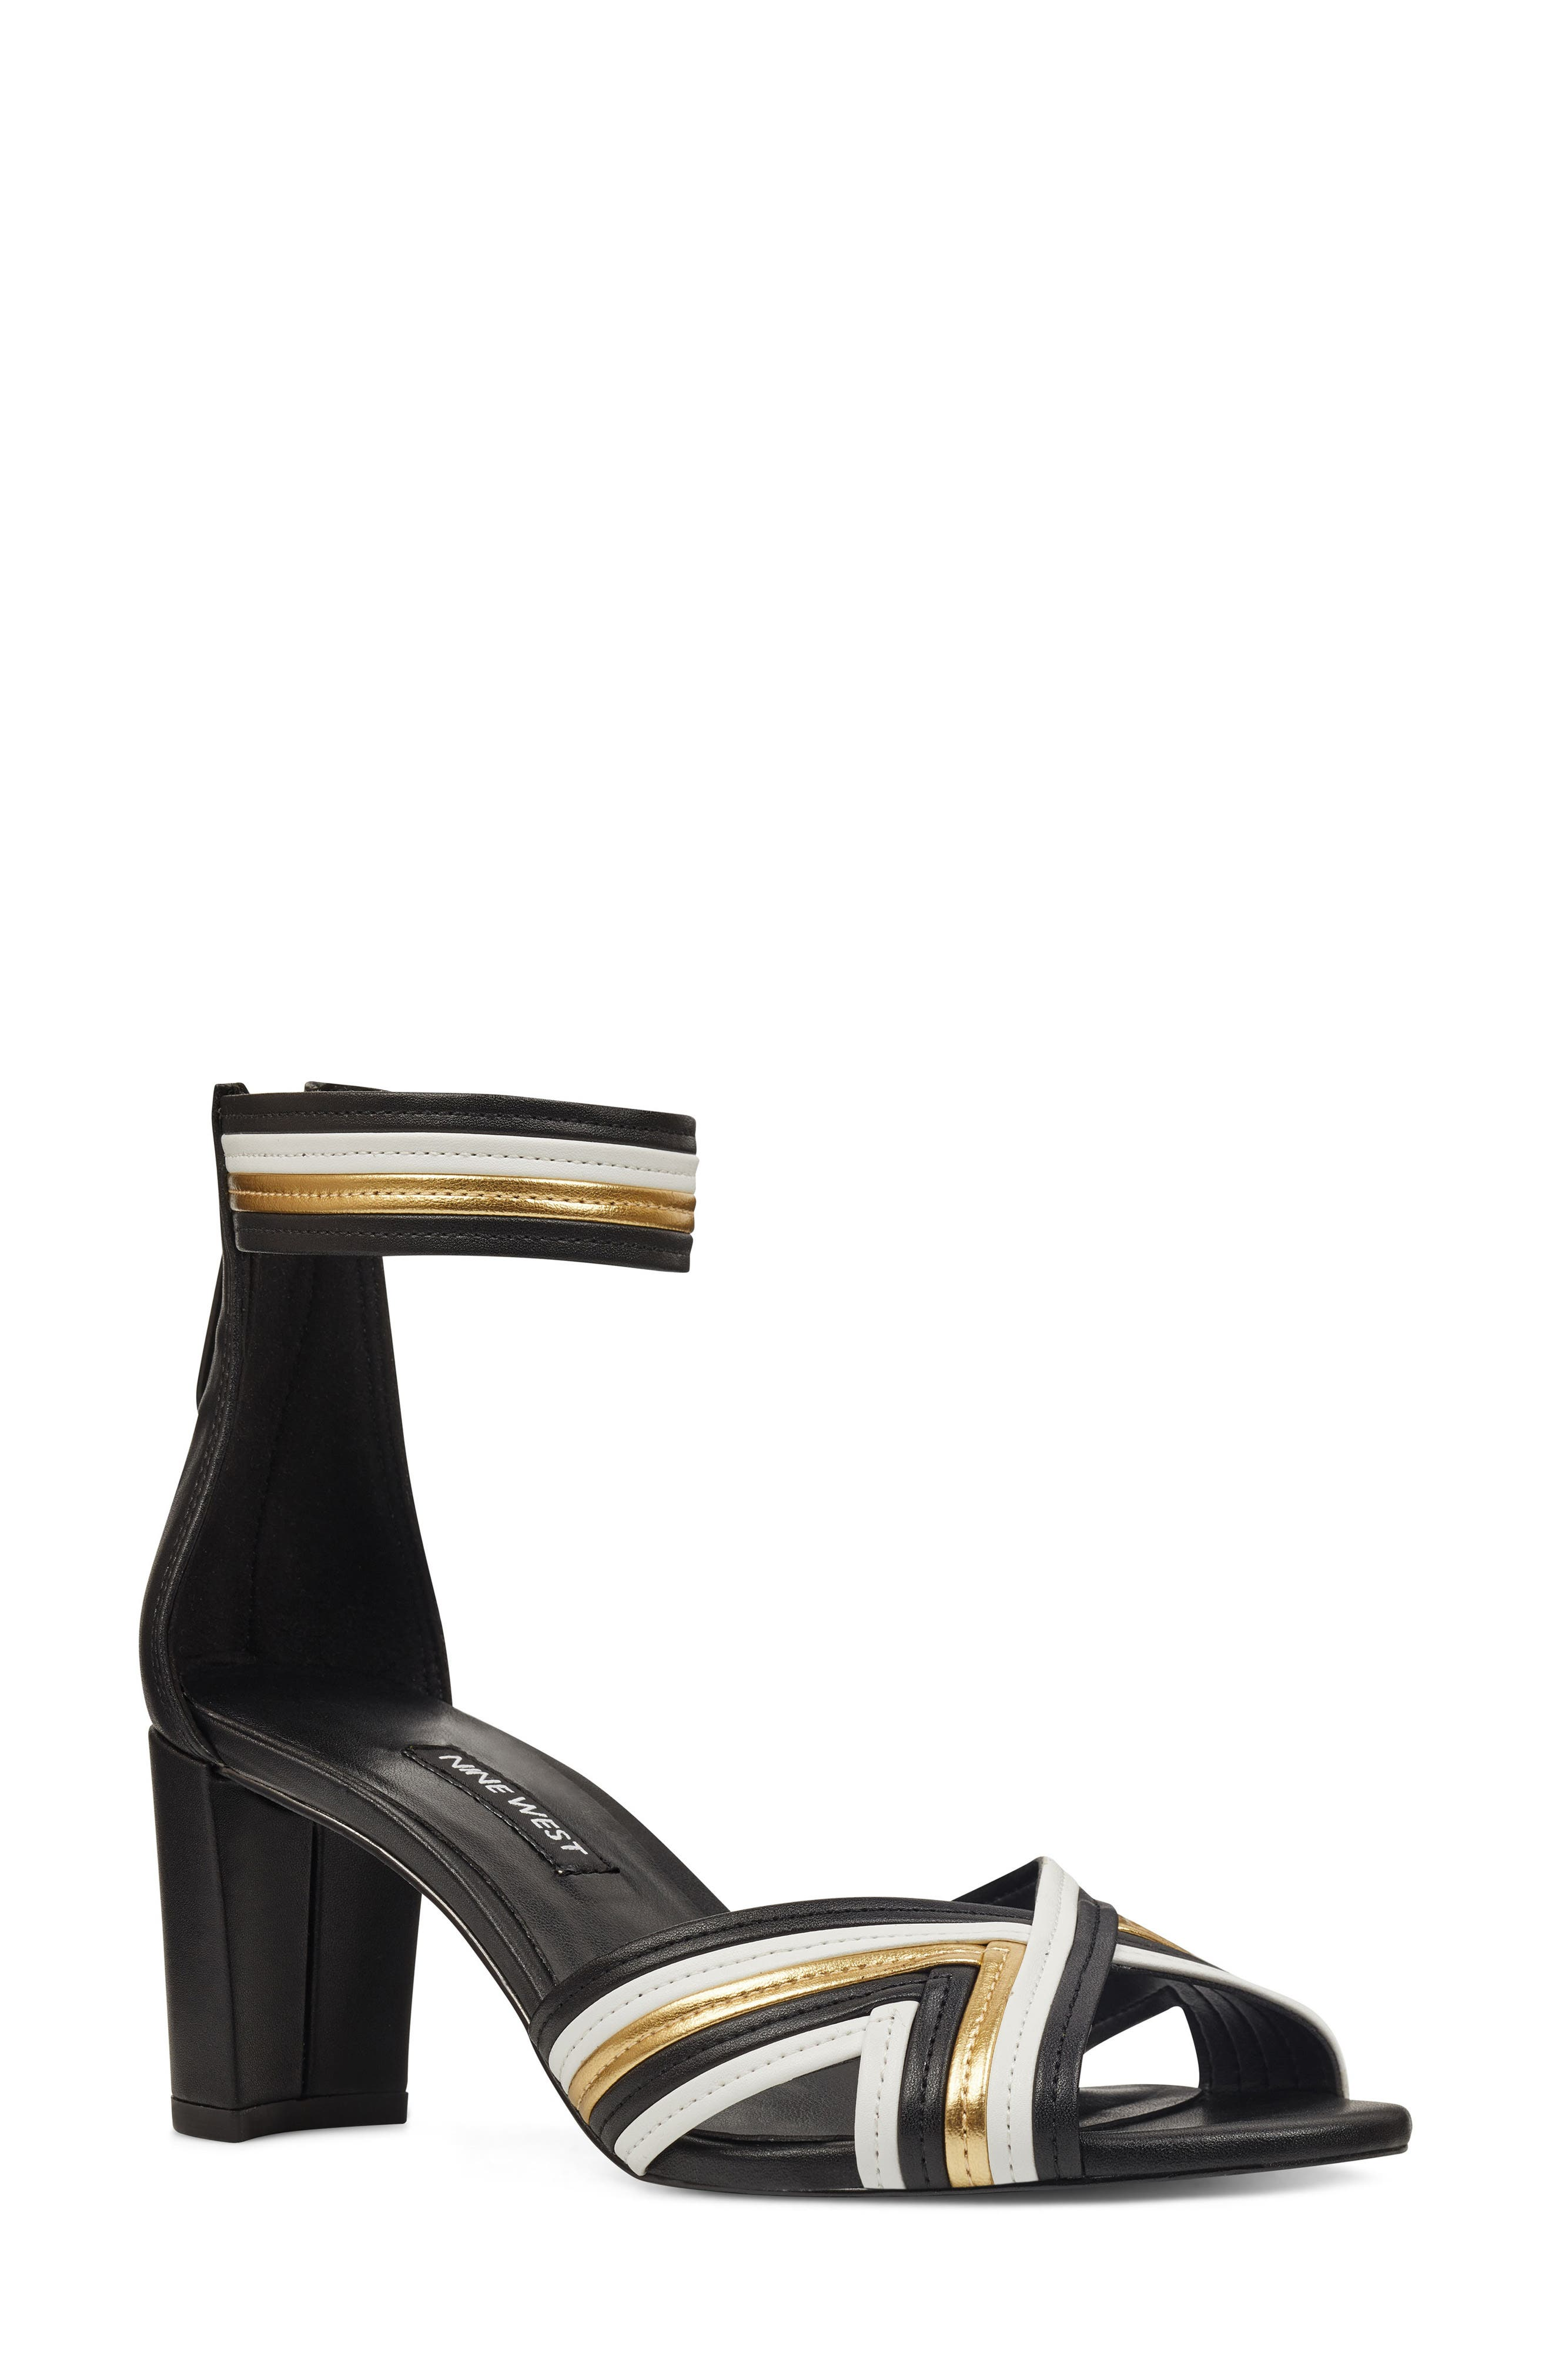 NINE WEST Pearl3 Ankle Strap Sandal, Main, color, BLACK/ WHITE ORO LEATHER